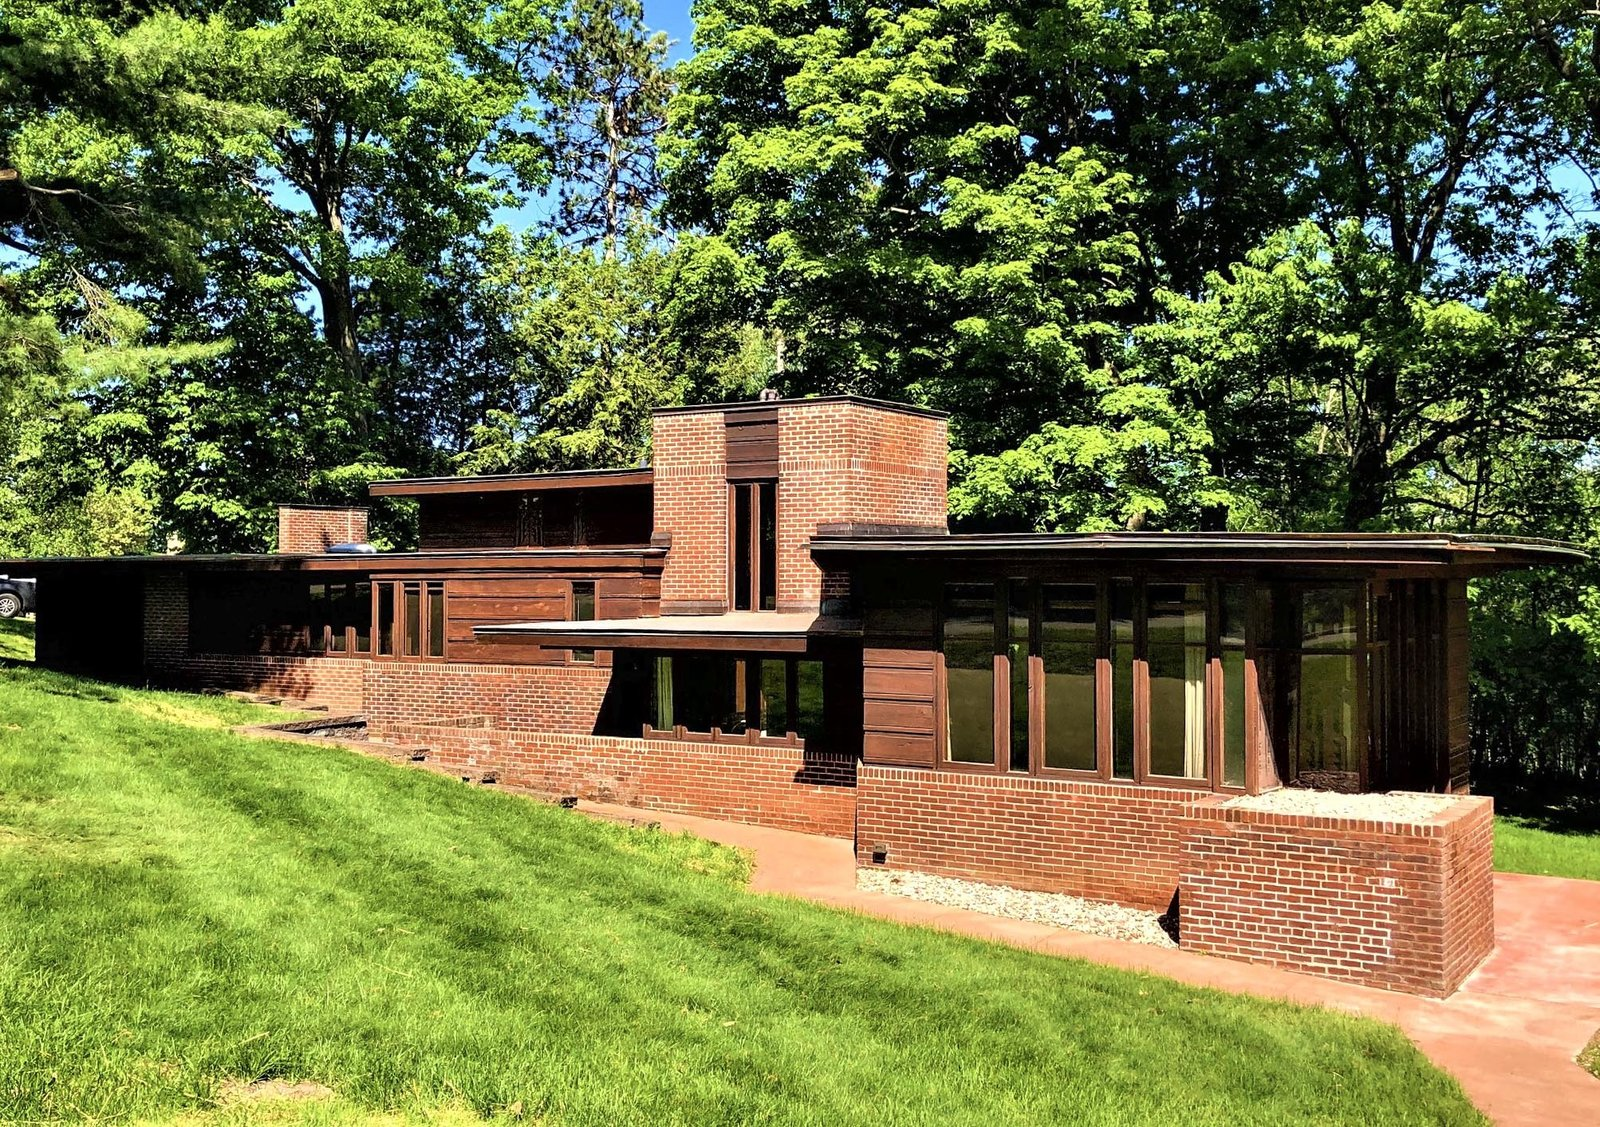 A front view of the home shows the long, horizontal orientation. The home was designed  Photo 10 of 10 in One of Frank Lloyd Wright's First Usonian Houses Hits the Market in Wisconsin for $425K